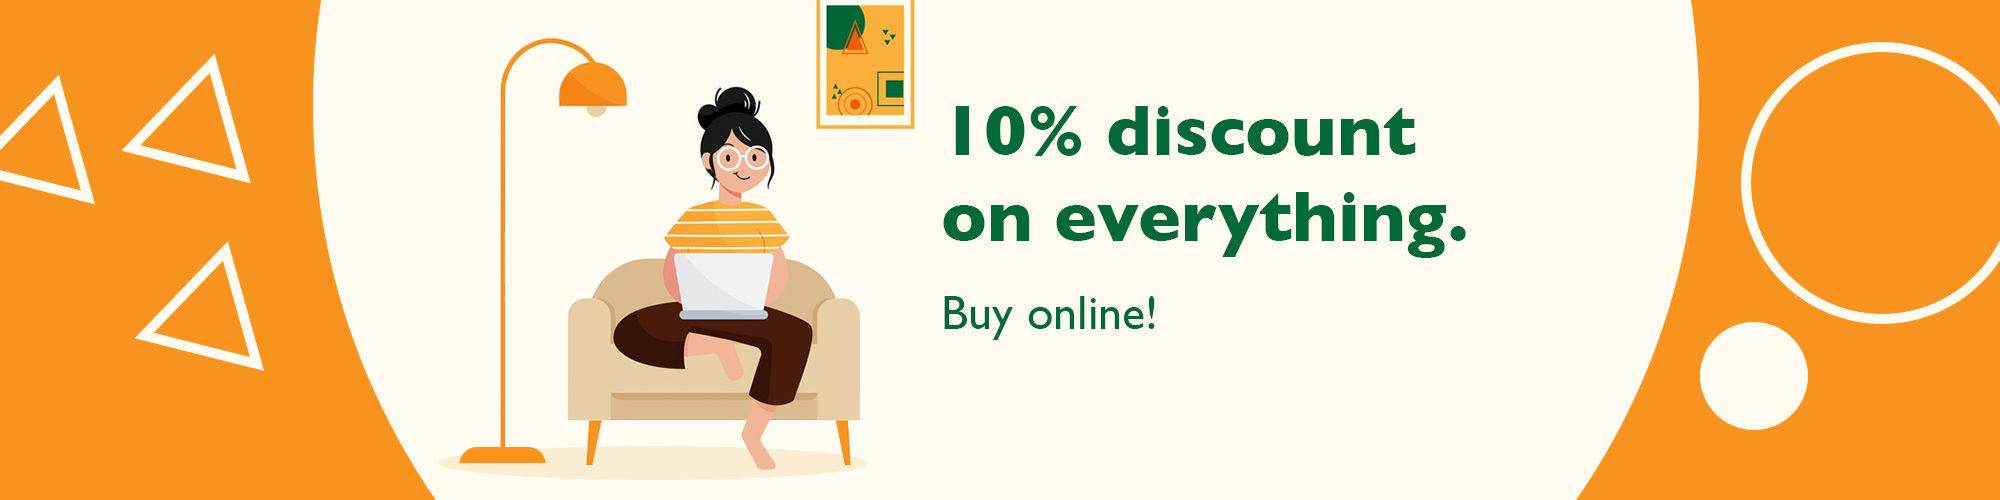 10% discount on everything